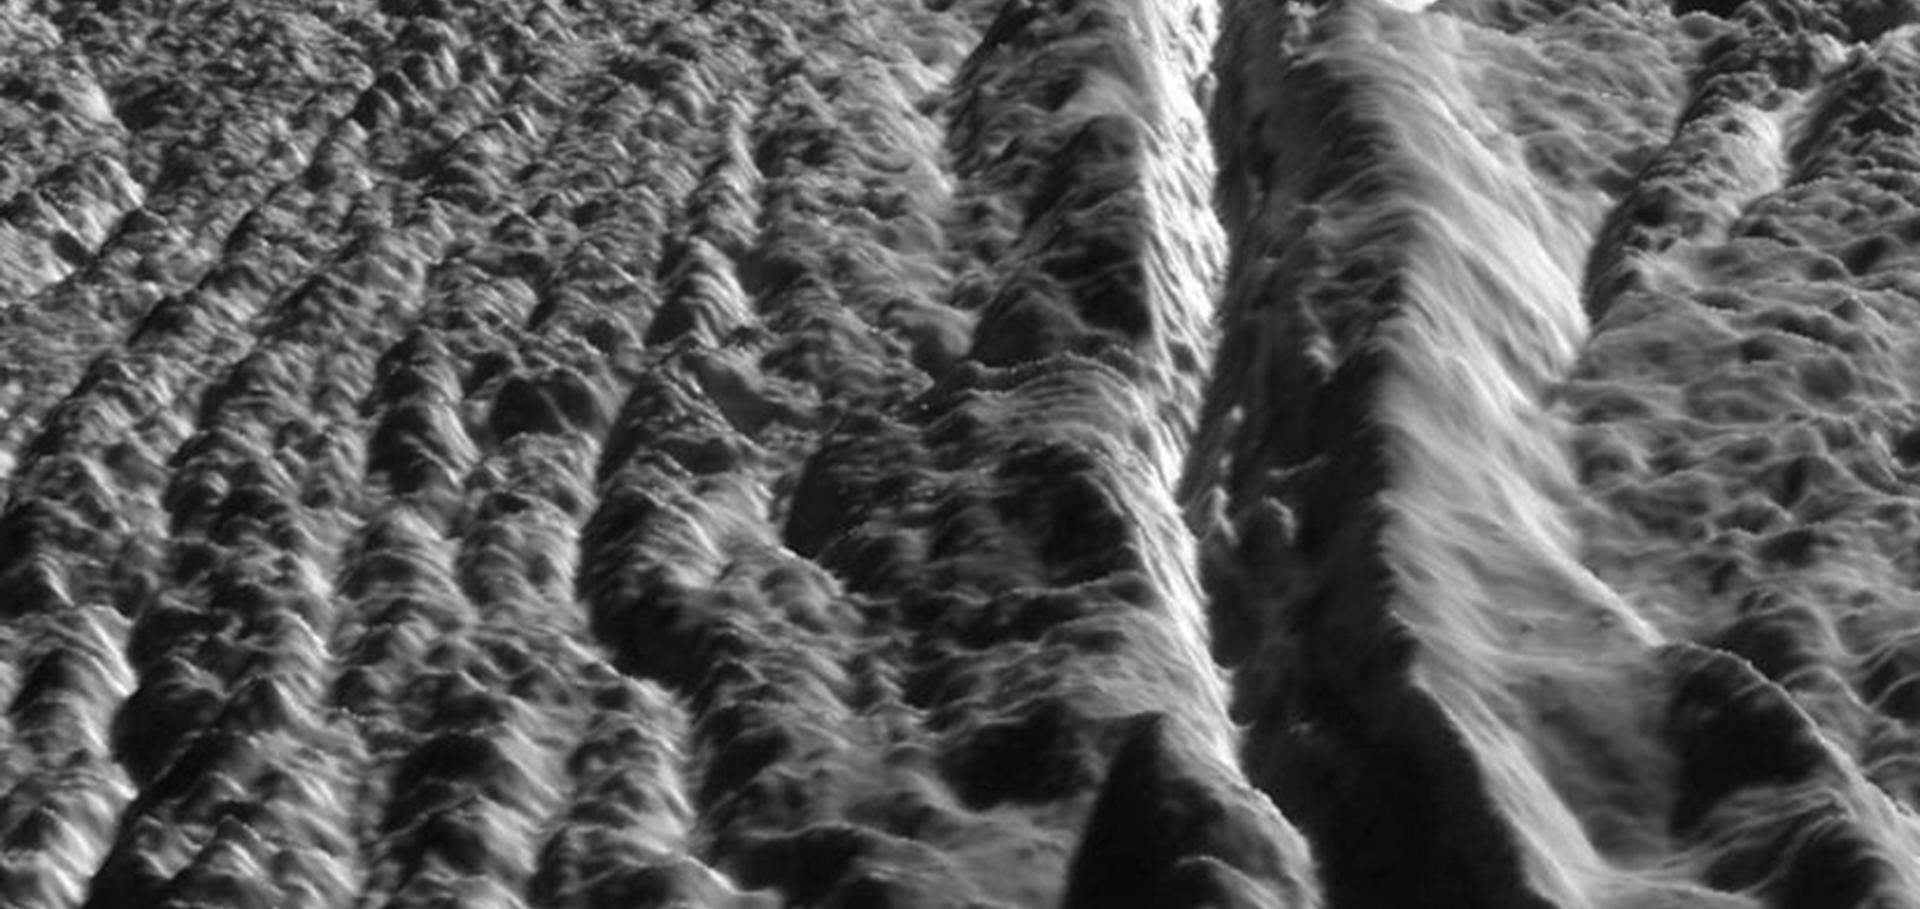 Enceladus' Damascus Sulcus. This image was generated by combining high resolution images of Enceladus acquired in August 2008 at 12 to 30 meters (40 to 100 feet) resolution with a topographic map.